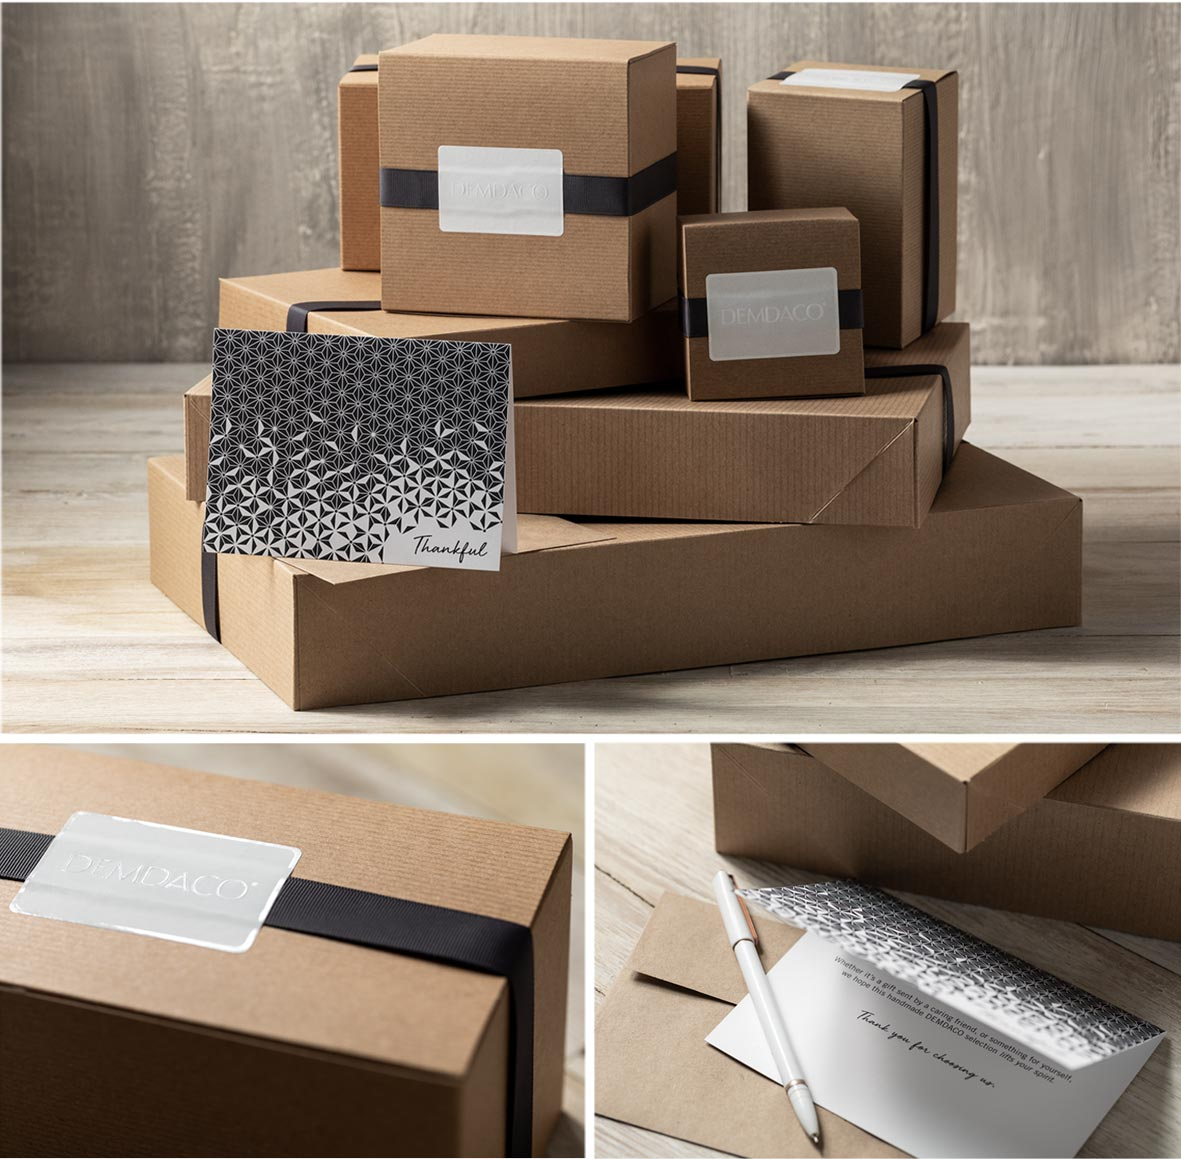 Brown boxes elegantly wrapped in dark ribbon and white DEMDACO sticker. Blue patterned notecard with the word Thankful printed on the front.